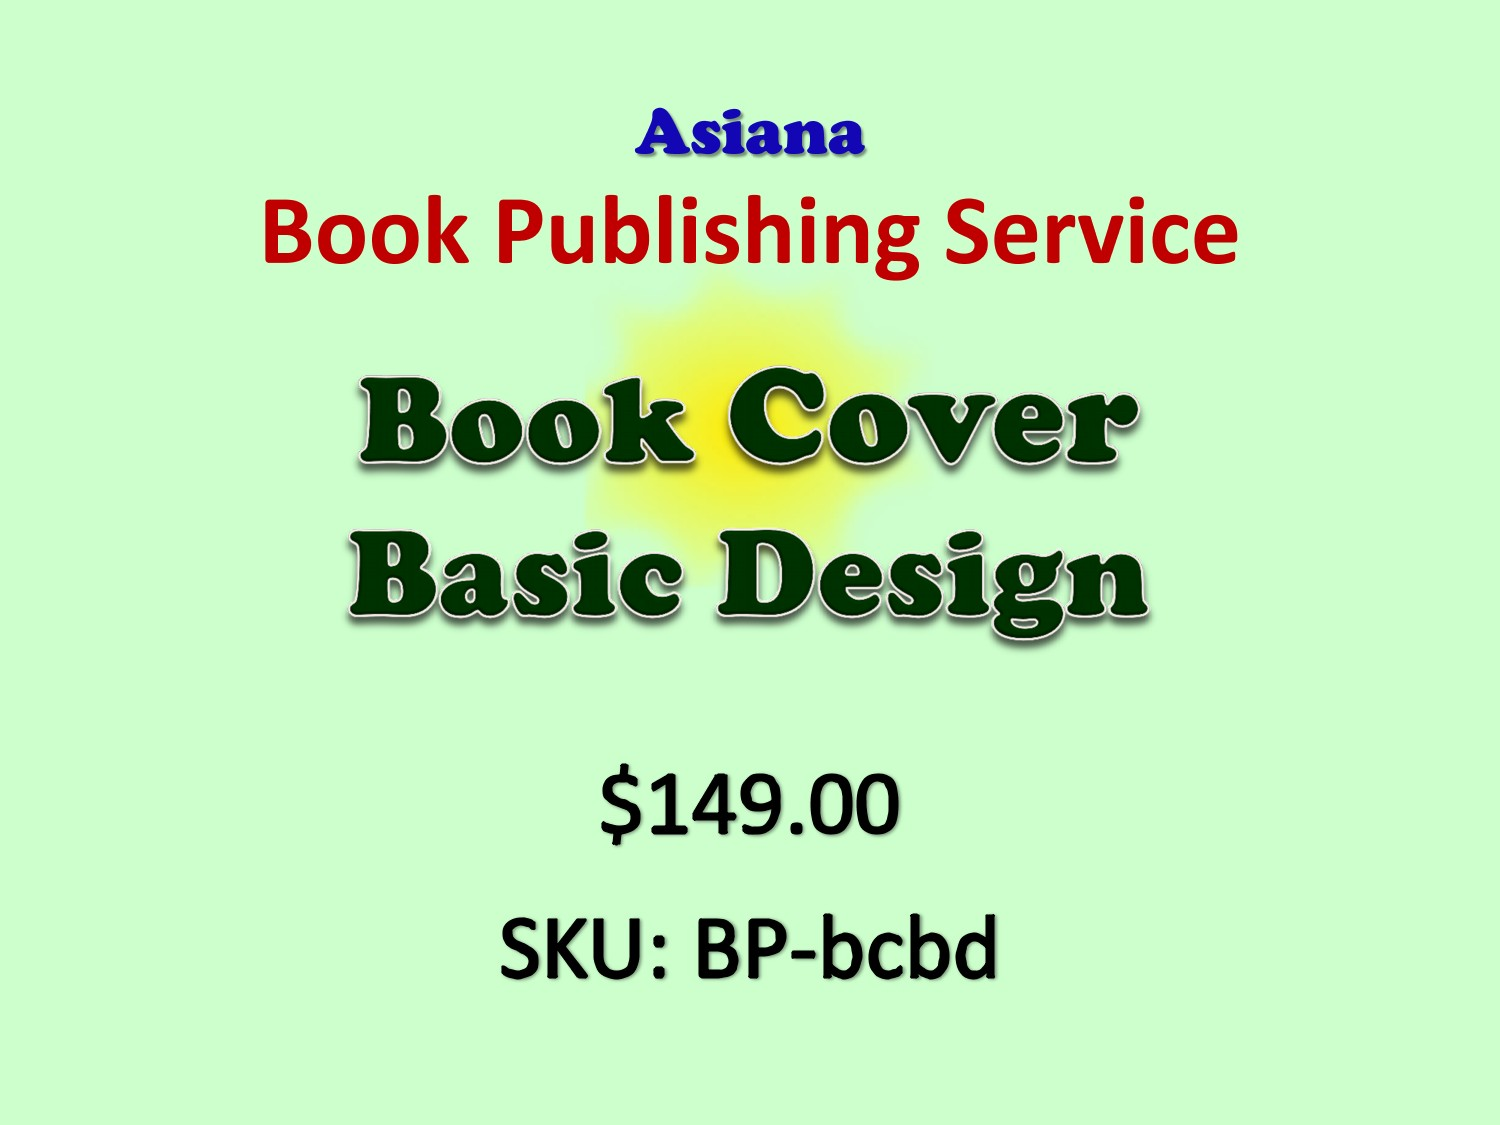 Book Cover Design From East Asia ~ Book cover basic design asiana publishing llc